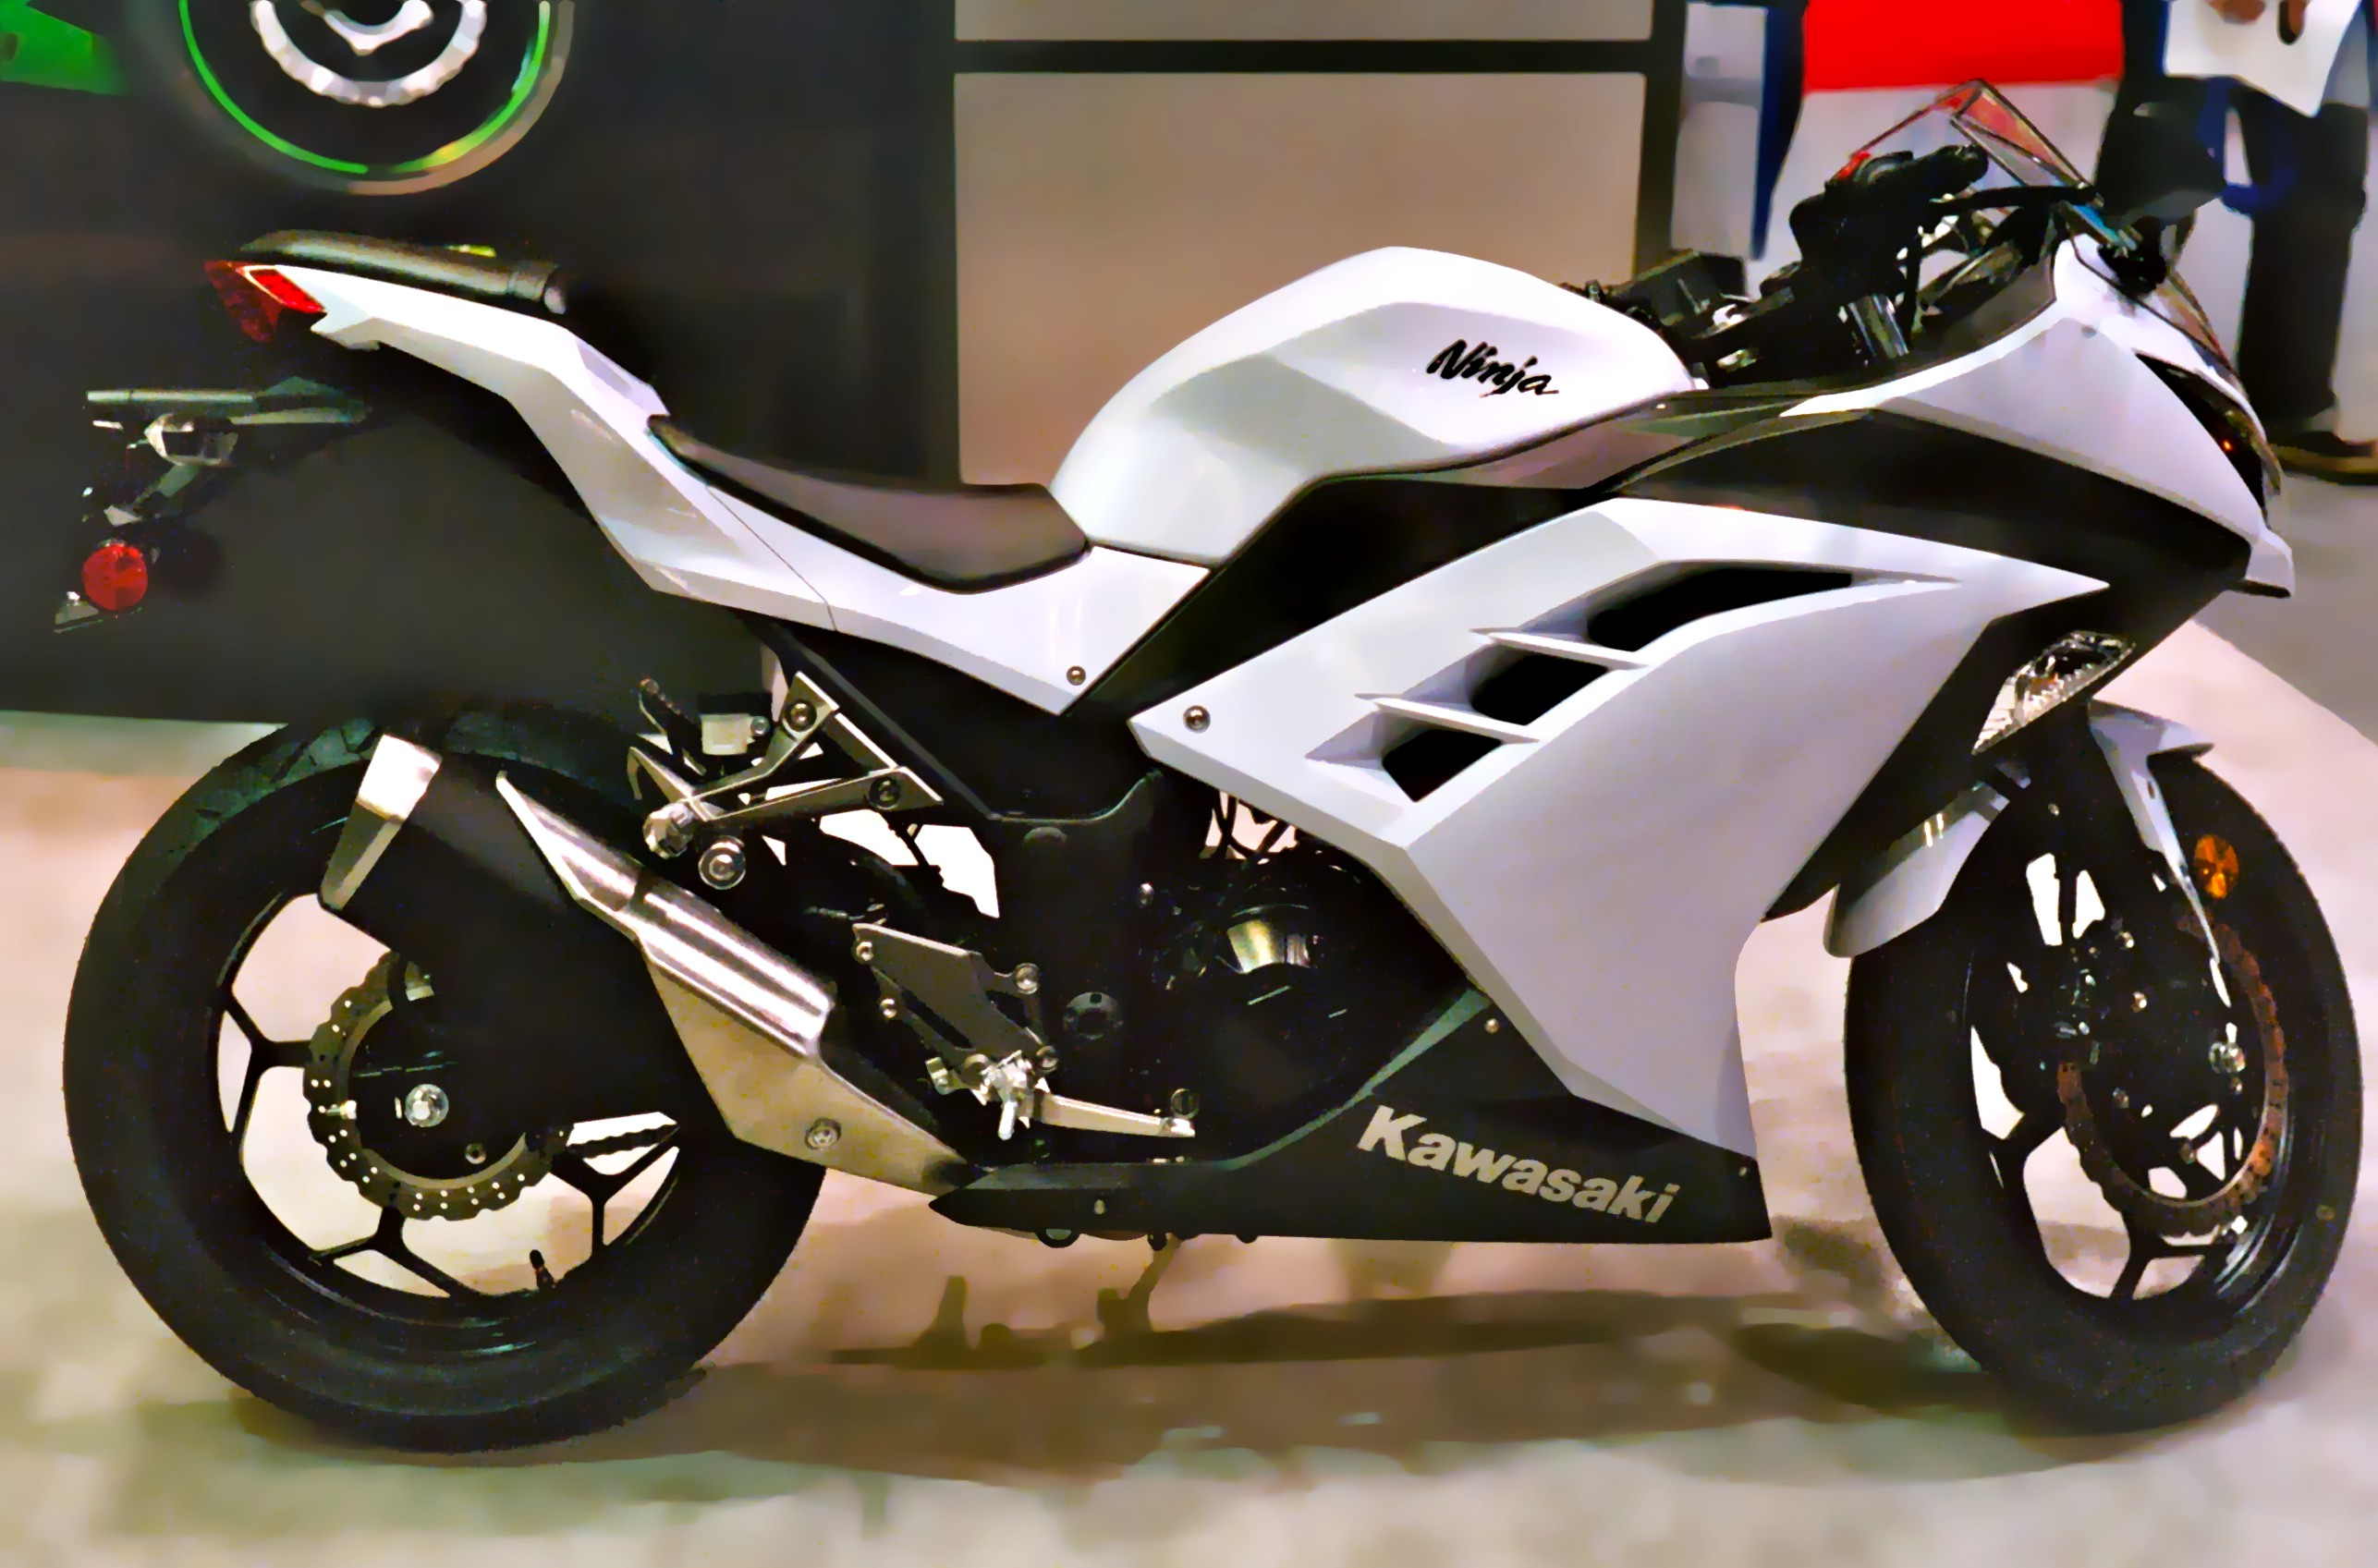 Kawasaki Ninja Top Speed Mph